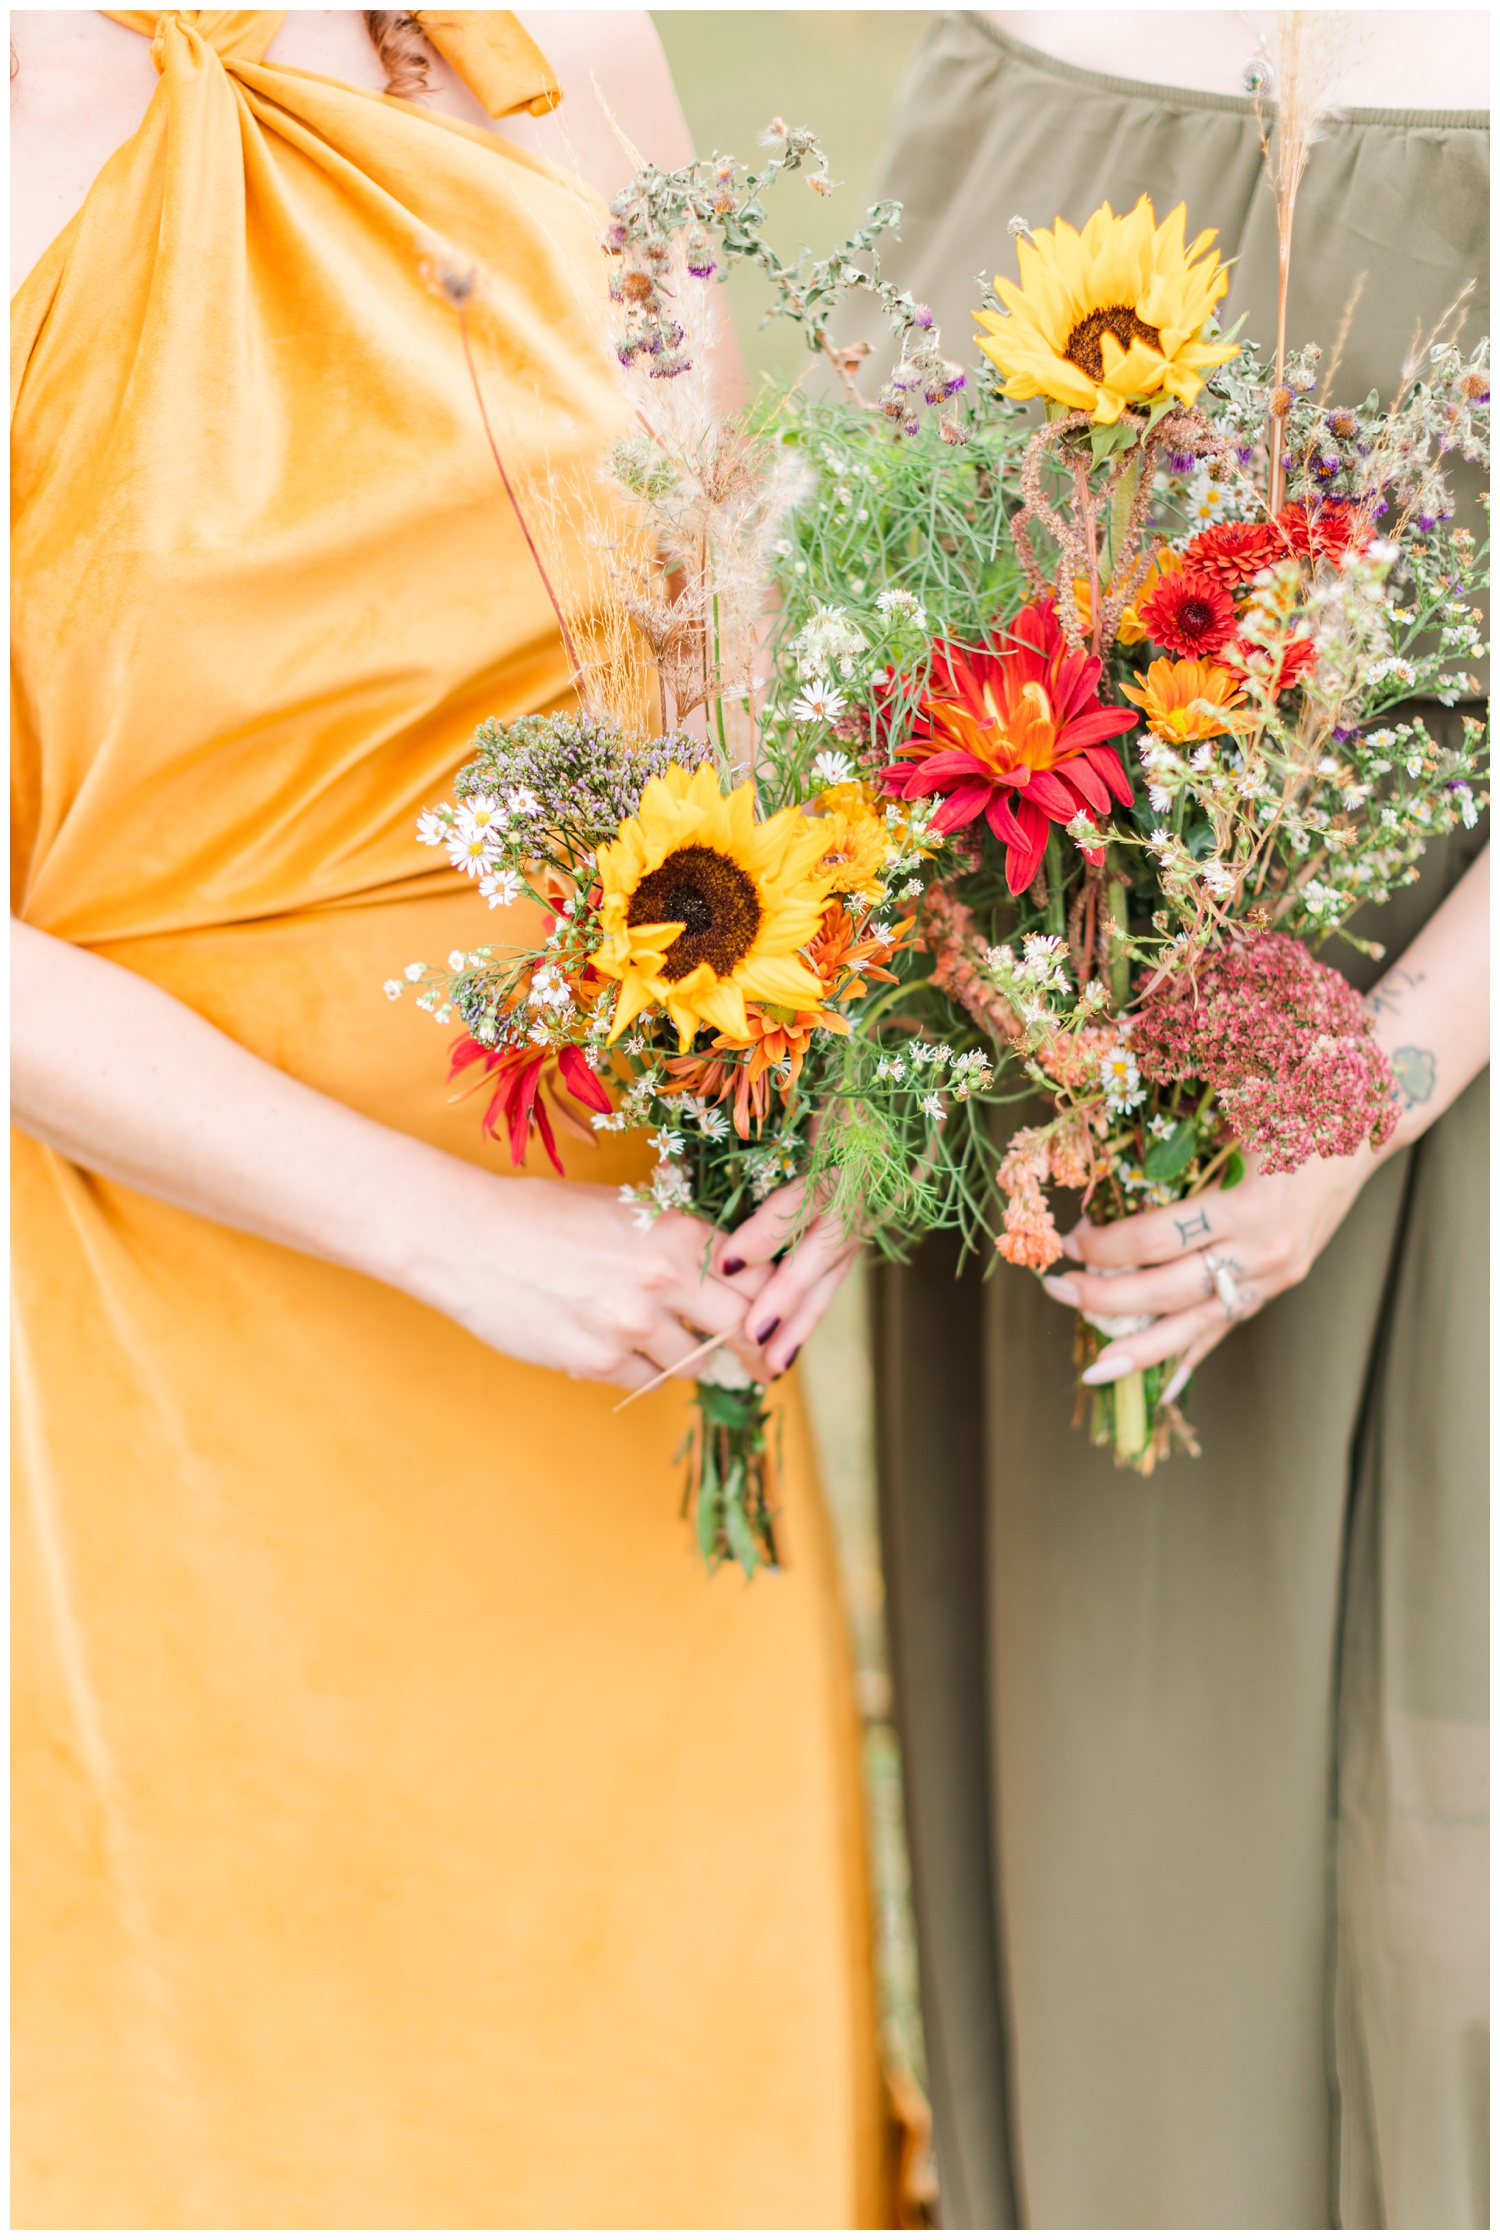 Fresh picked wildflower wedding bridesmaids bouquets featuring sunflowers, mums, cattail, Queen Anne's lace and pampas grass   CB Studio